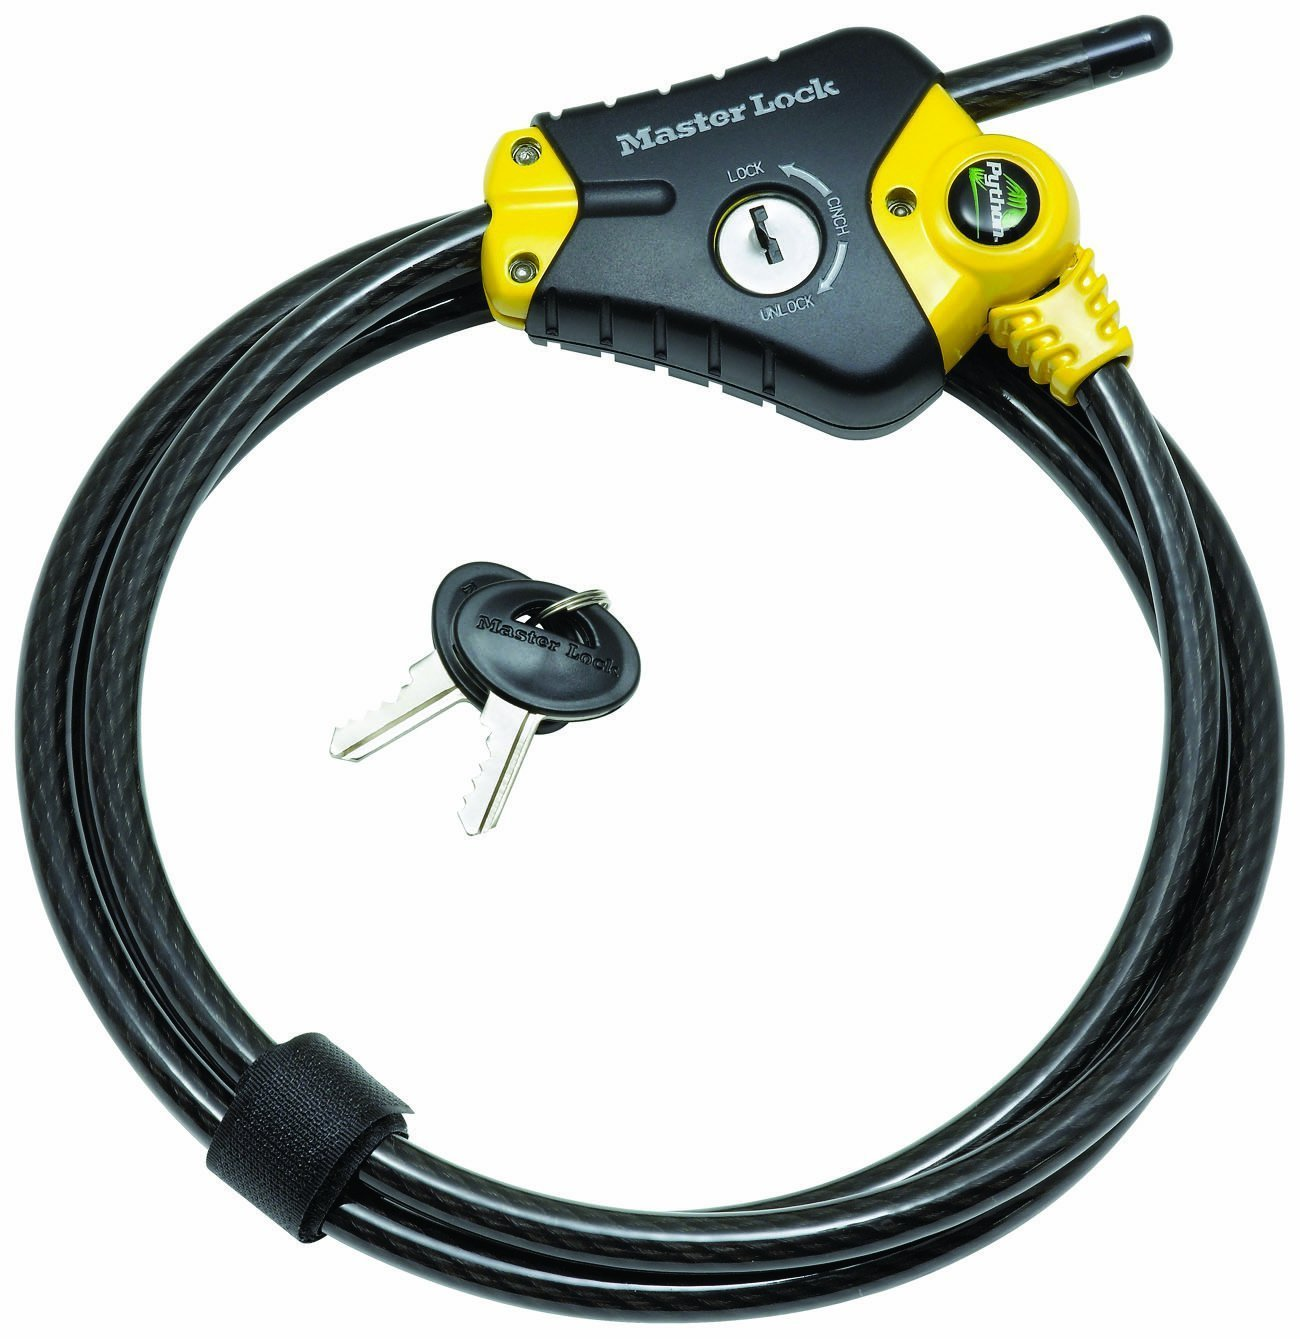 Master Lock 8433DAT 4 Pack 6ft. Python Adjustable Locking Cable, Yello and Black